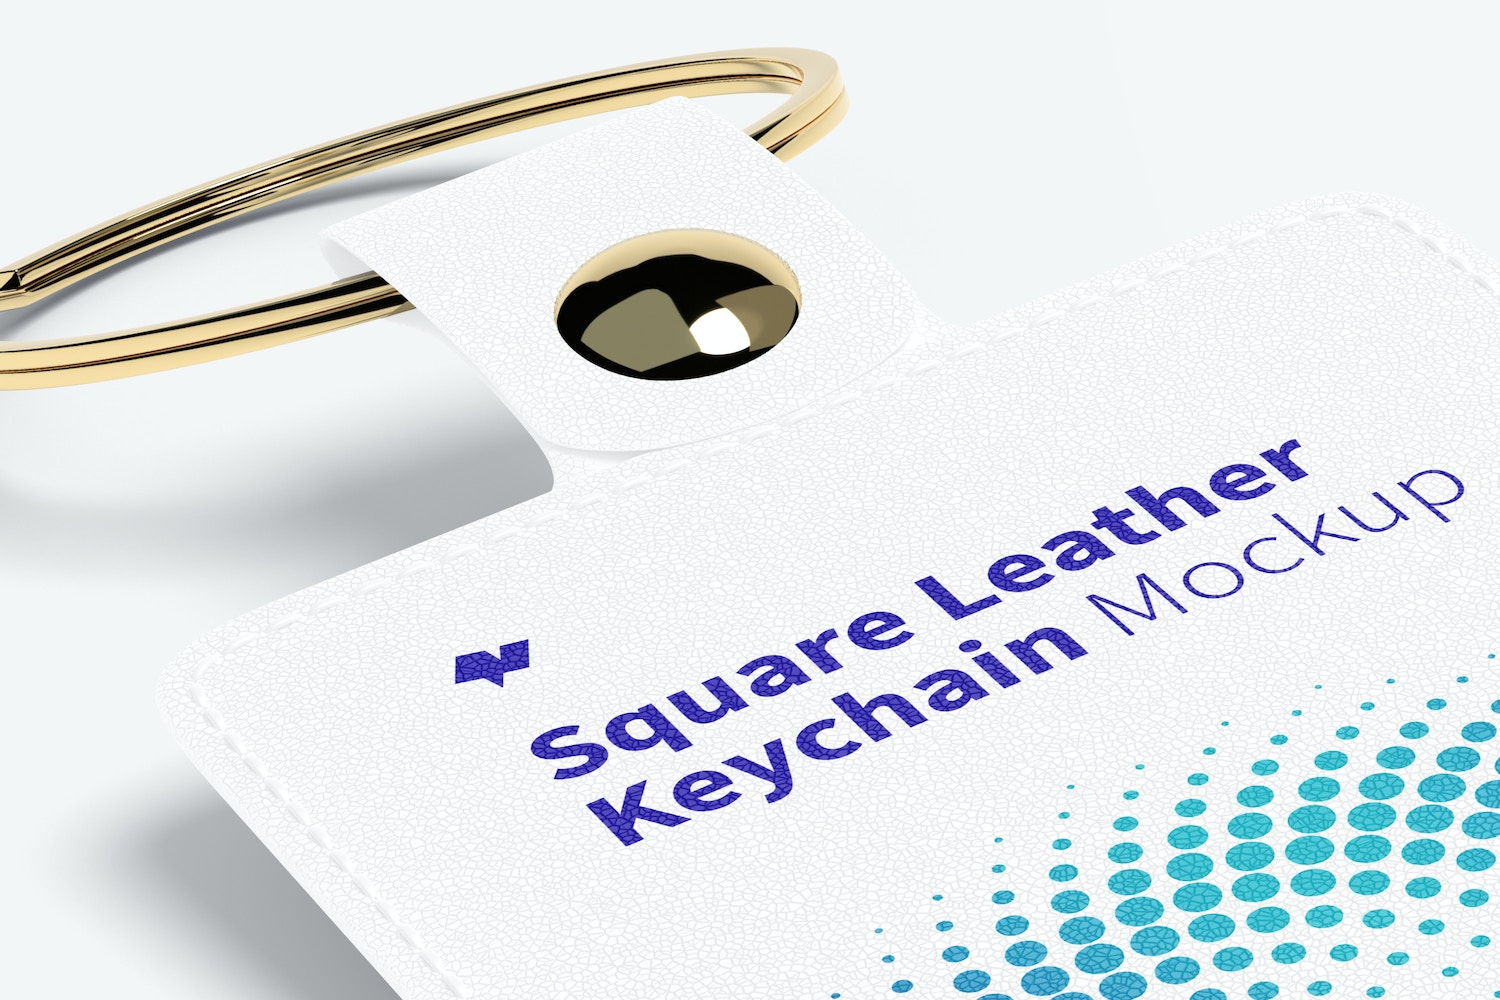 Get the best quality results with this mockup. Look how good the details look in this close-up.